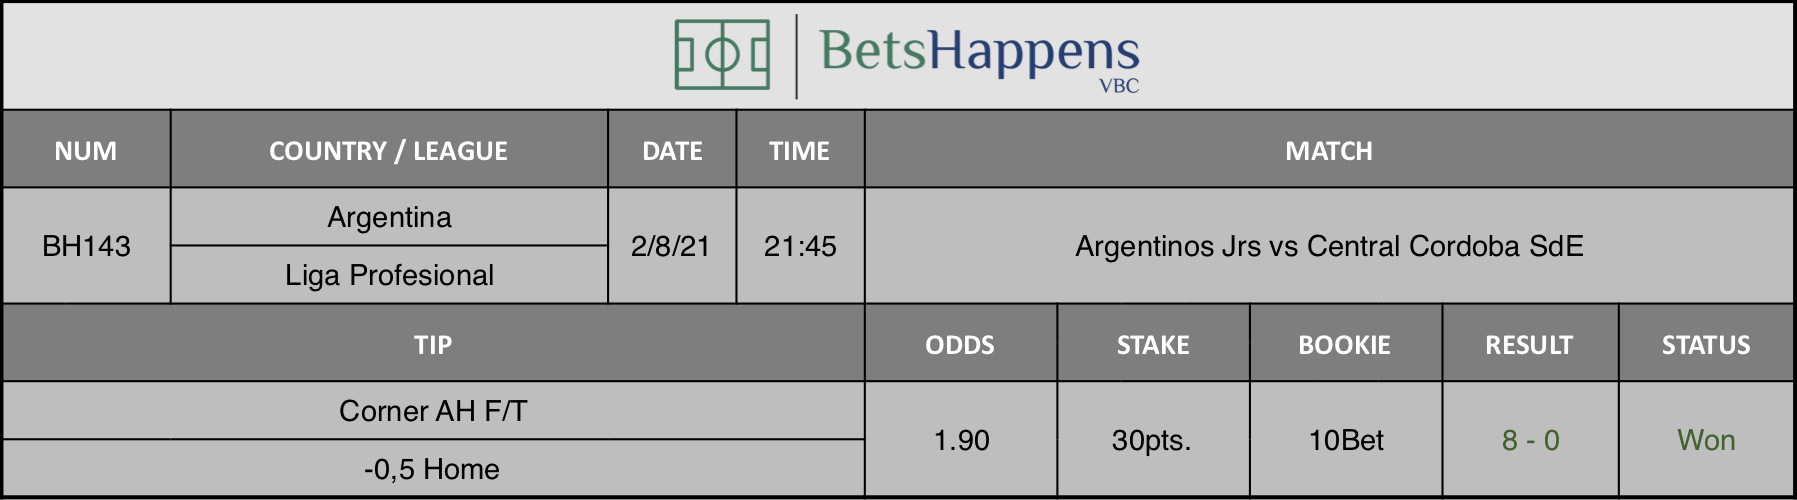 Results of our advice for the Argentinos Jrs vs Central Cordoba SdE match in which Corner AH F/T -0,5 Home is recommended.